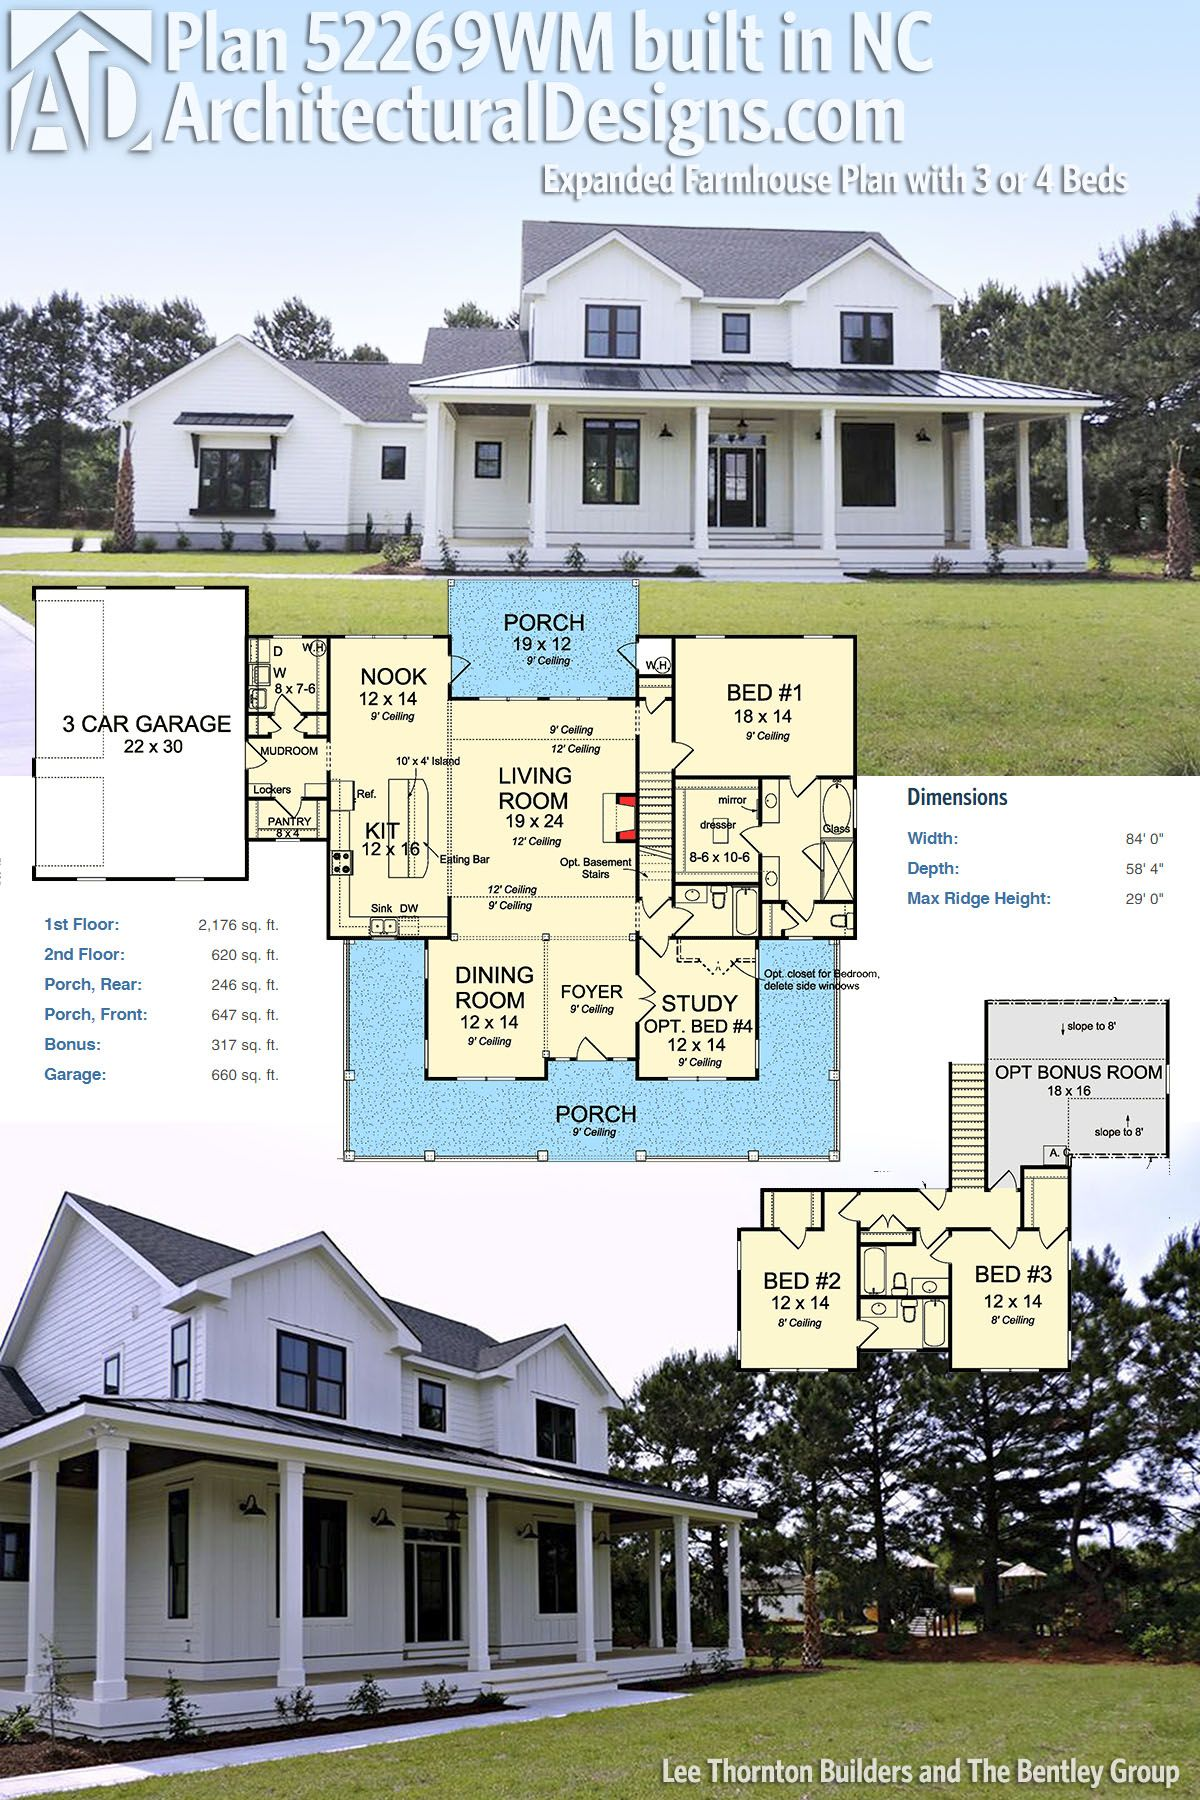 Architectural Designs Modern Farmhouse Plan 52269WM was stunningly     Architectural Designs Modern Farmhouse Plan 52269WM was stunningly built in  North Carolina by our client  Lee Thornton Builders  for The Bentley Group